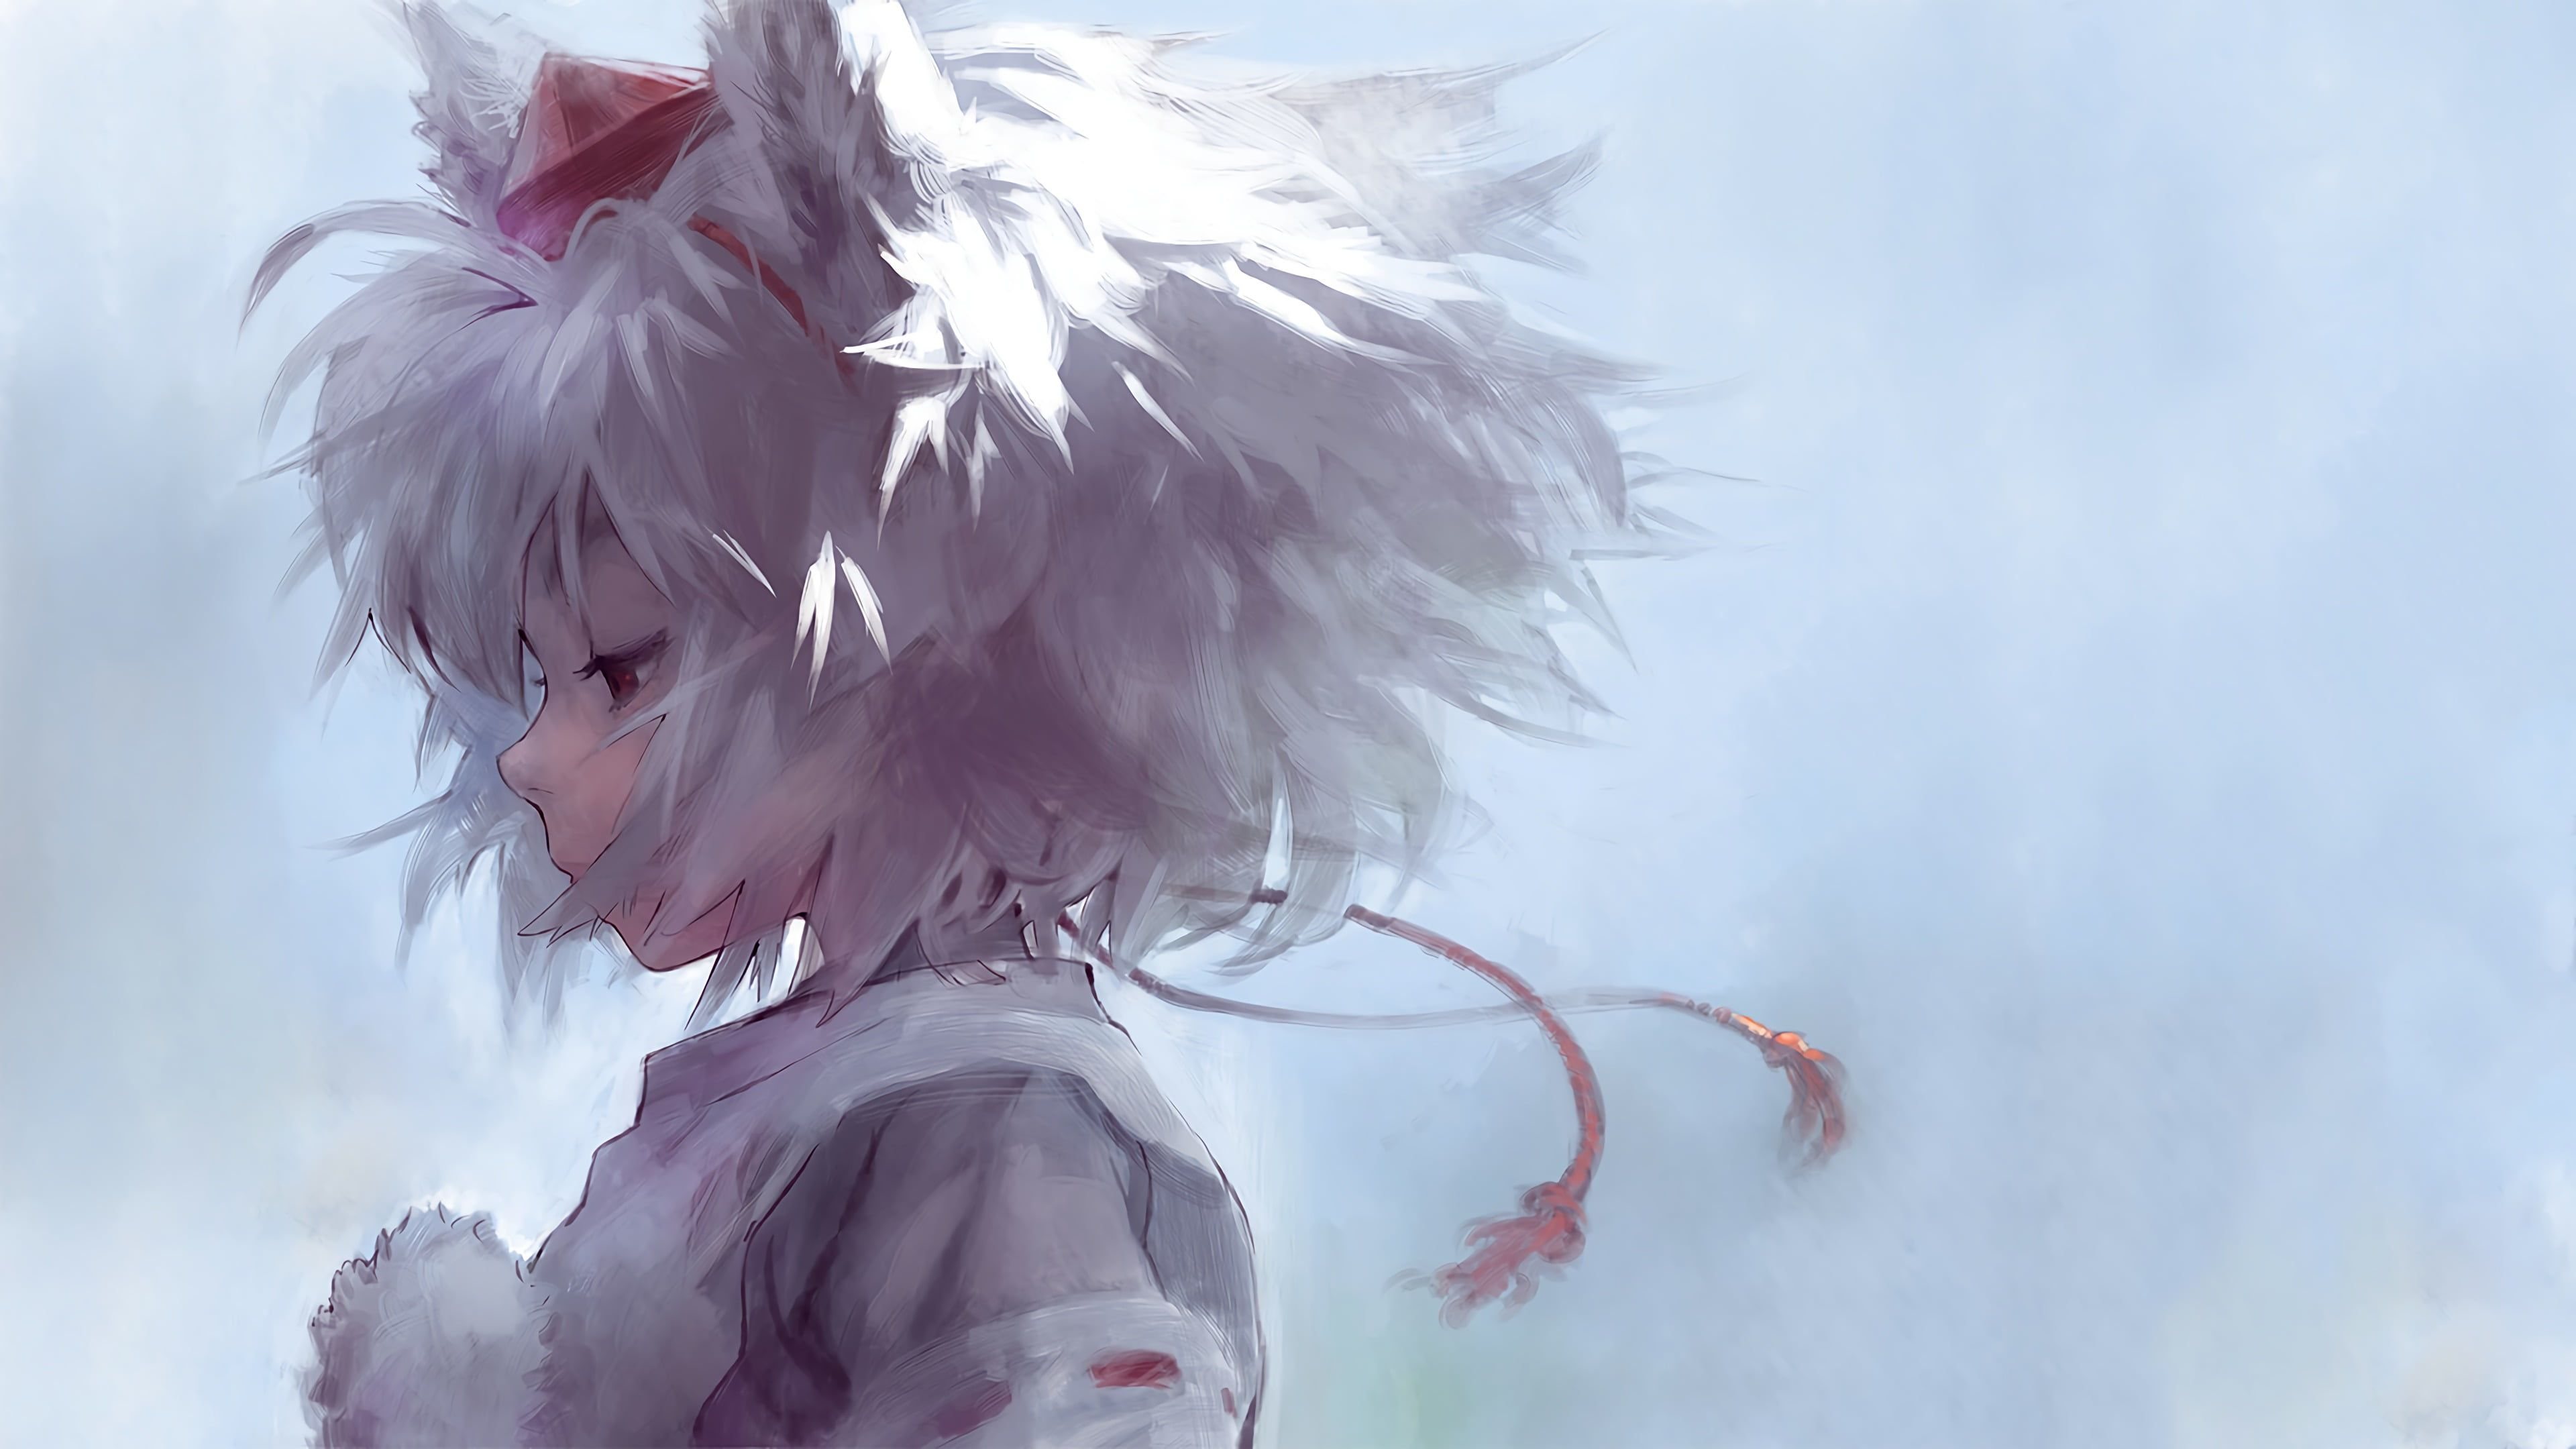 touhou project art Touhou anime girls simple background